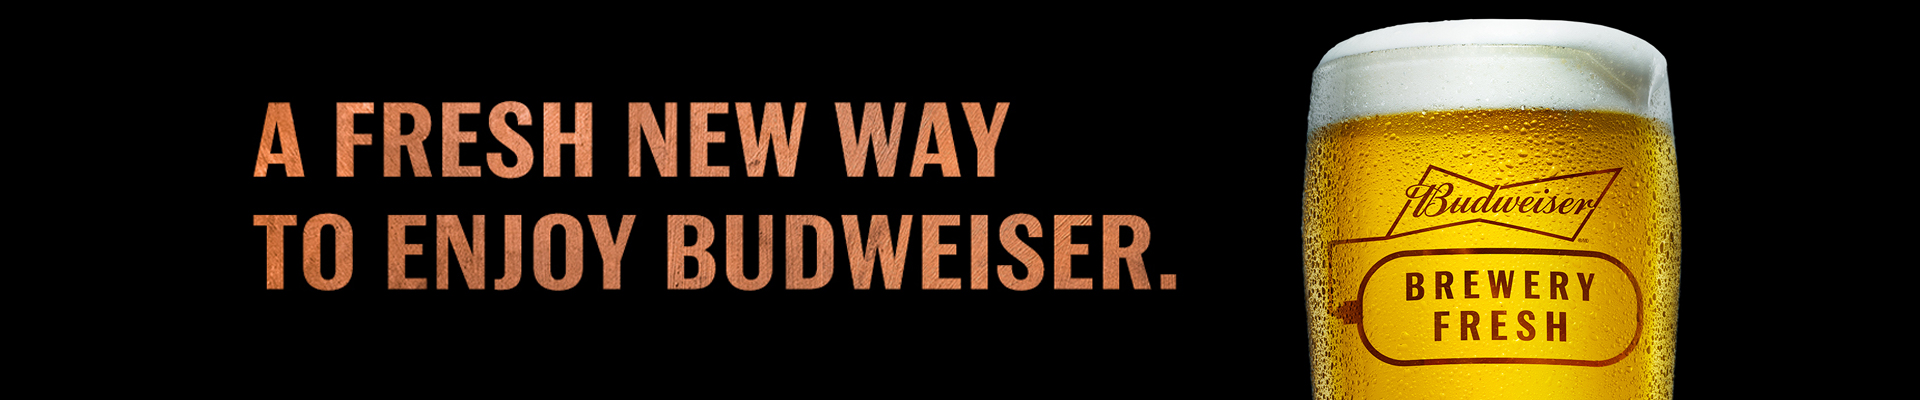 Introducing Budweiser Brewery Fresh